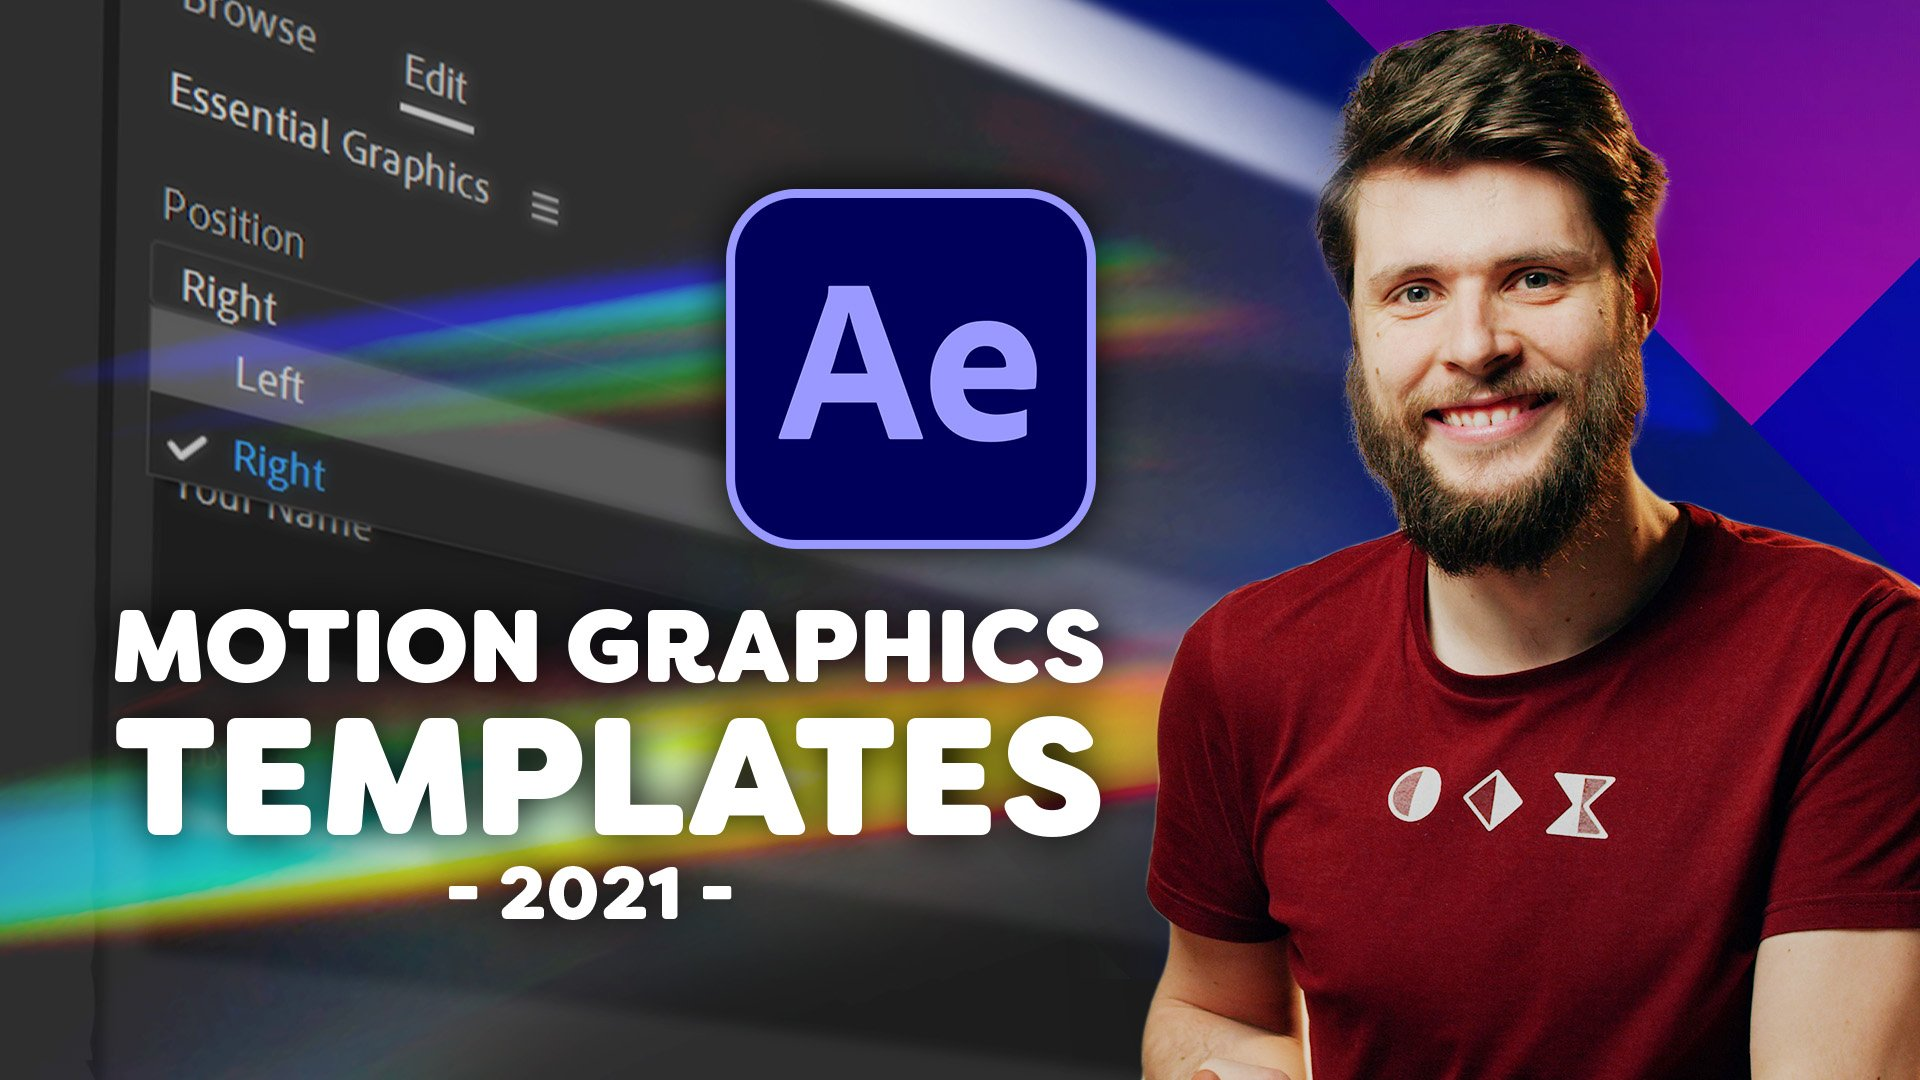 Motion Graphics Templates Course - After Effects